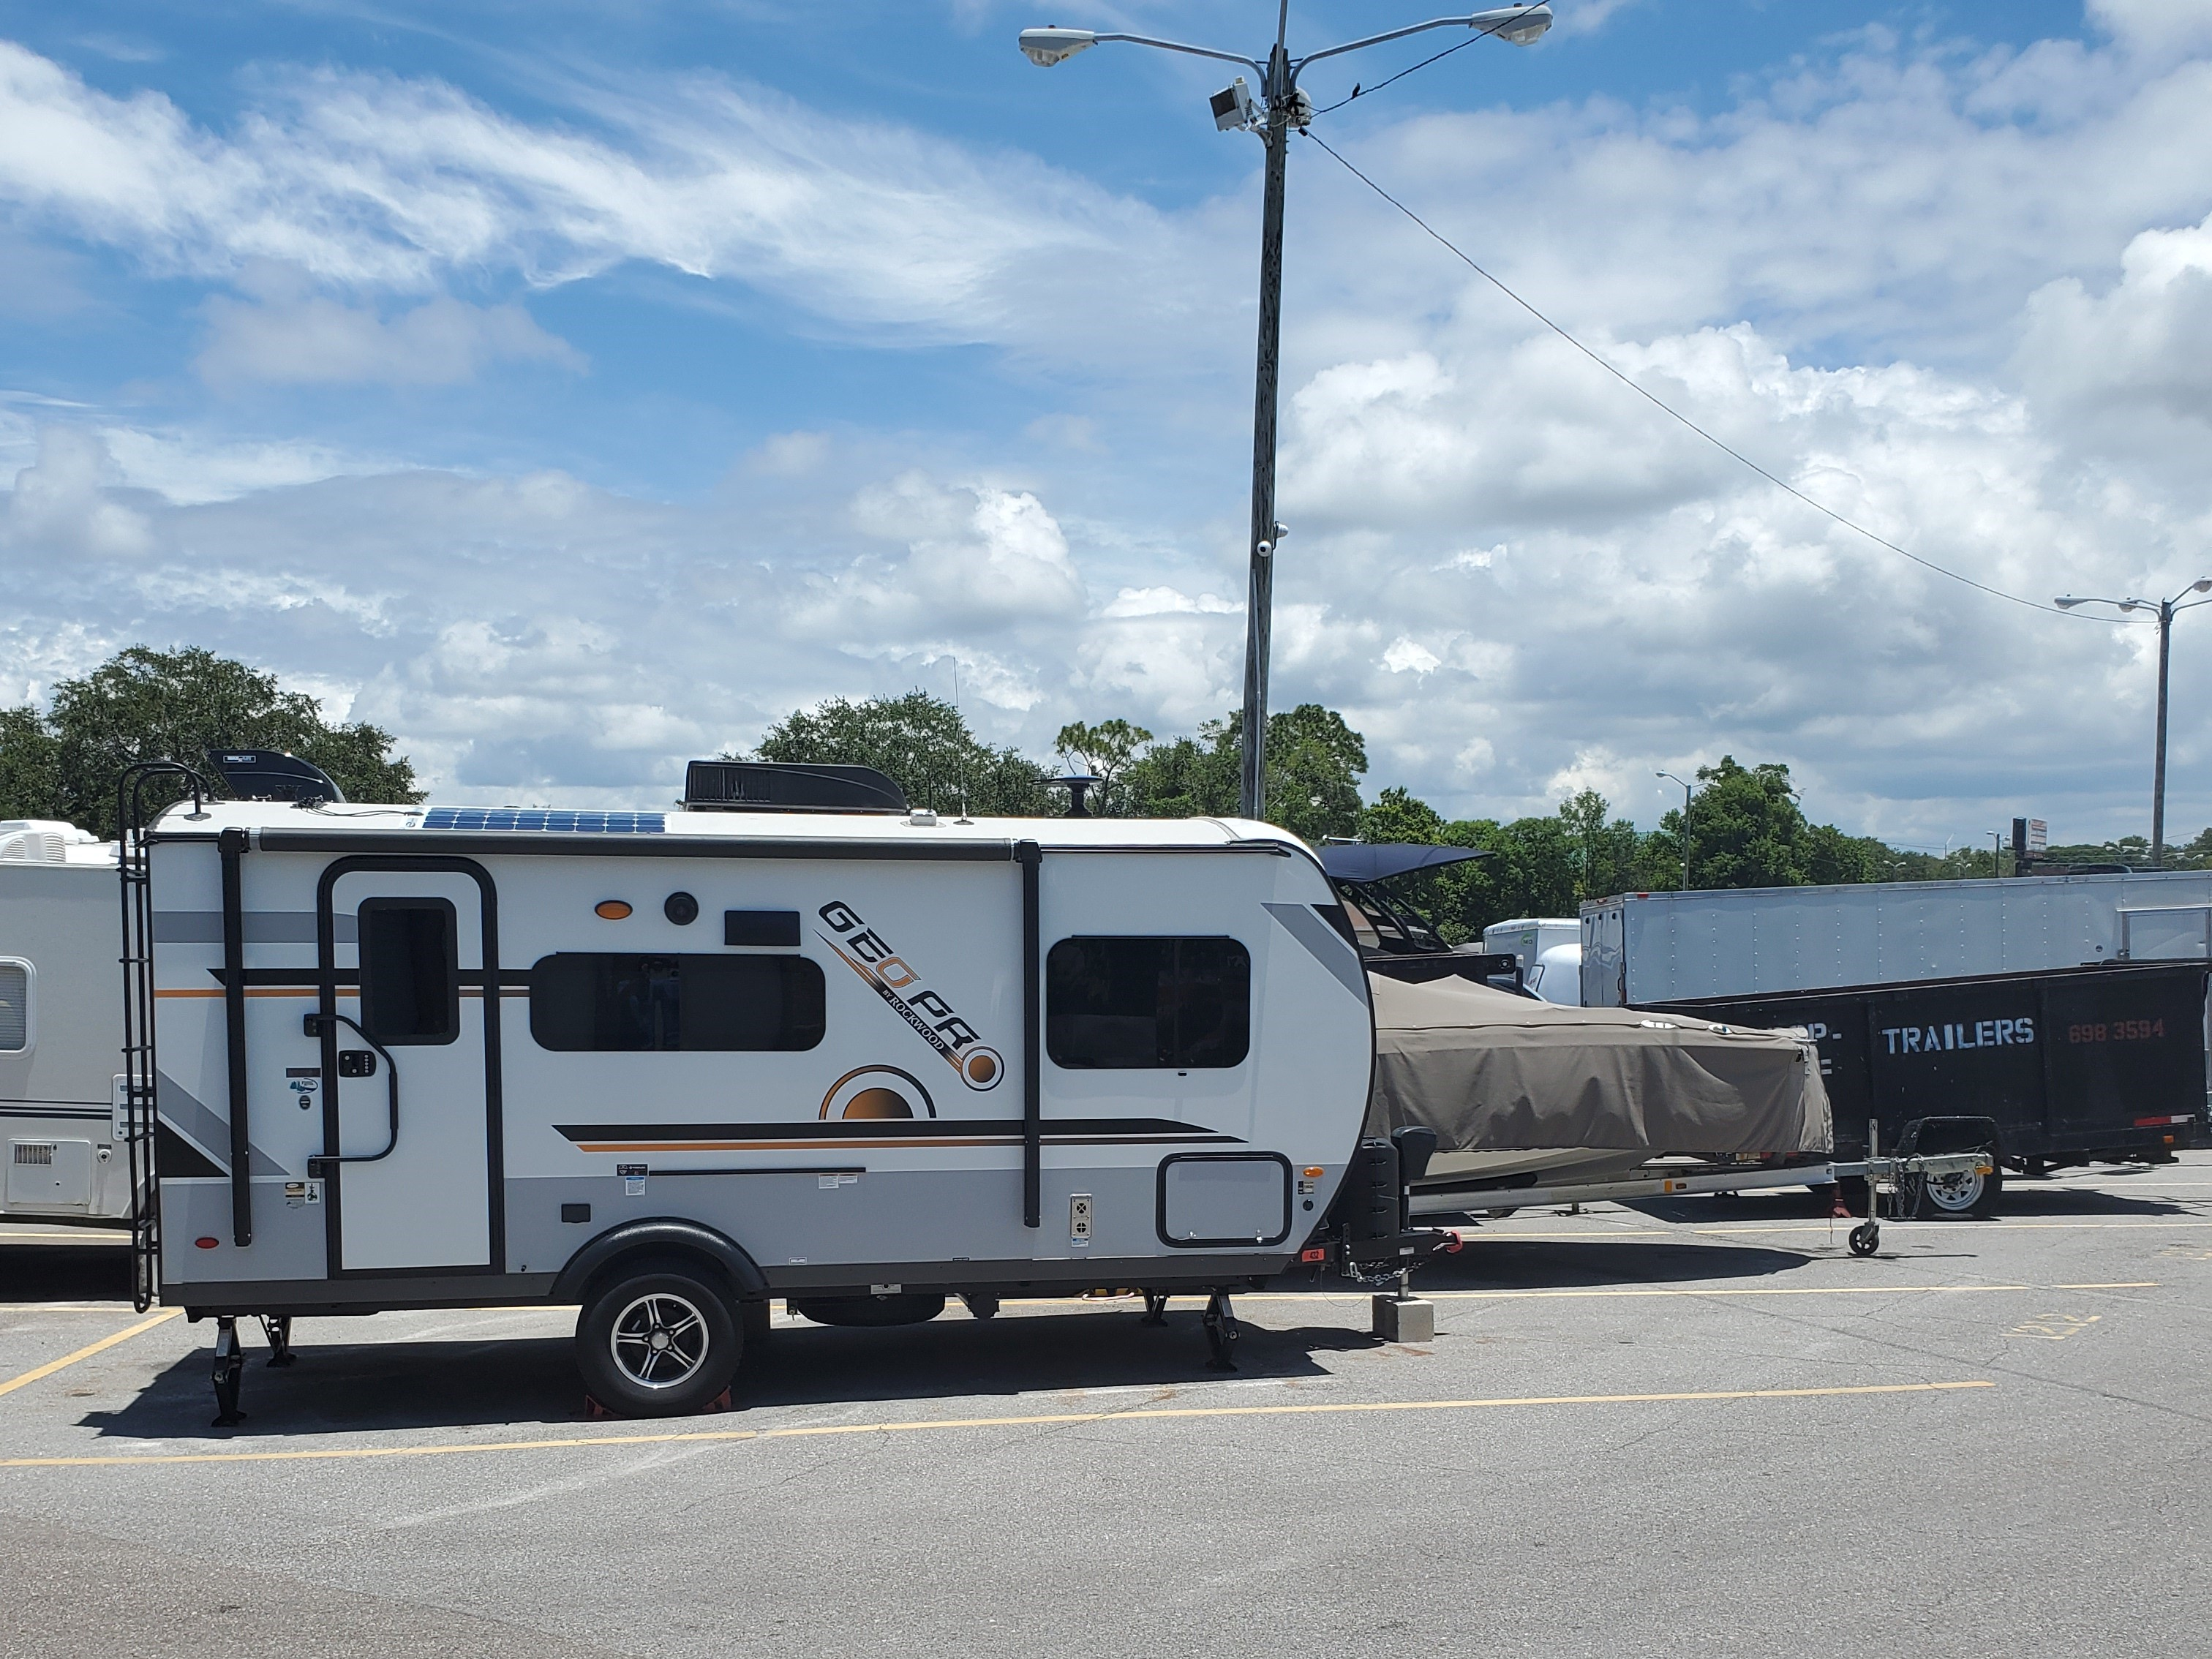 RVs parked outdoors